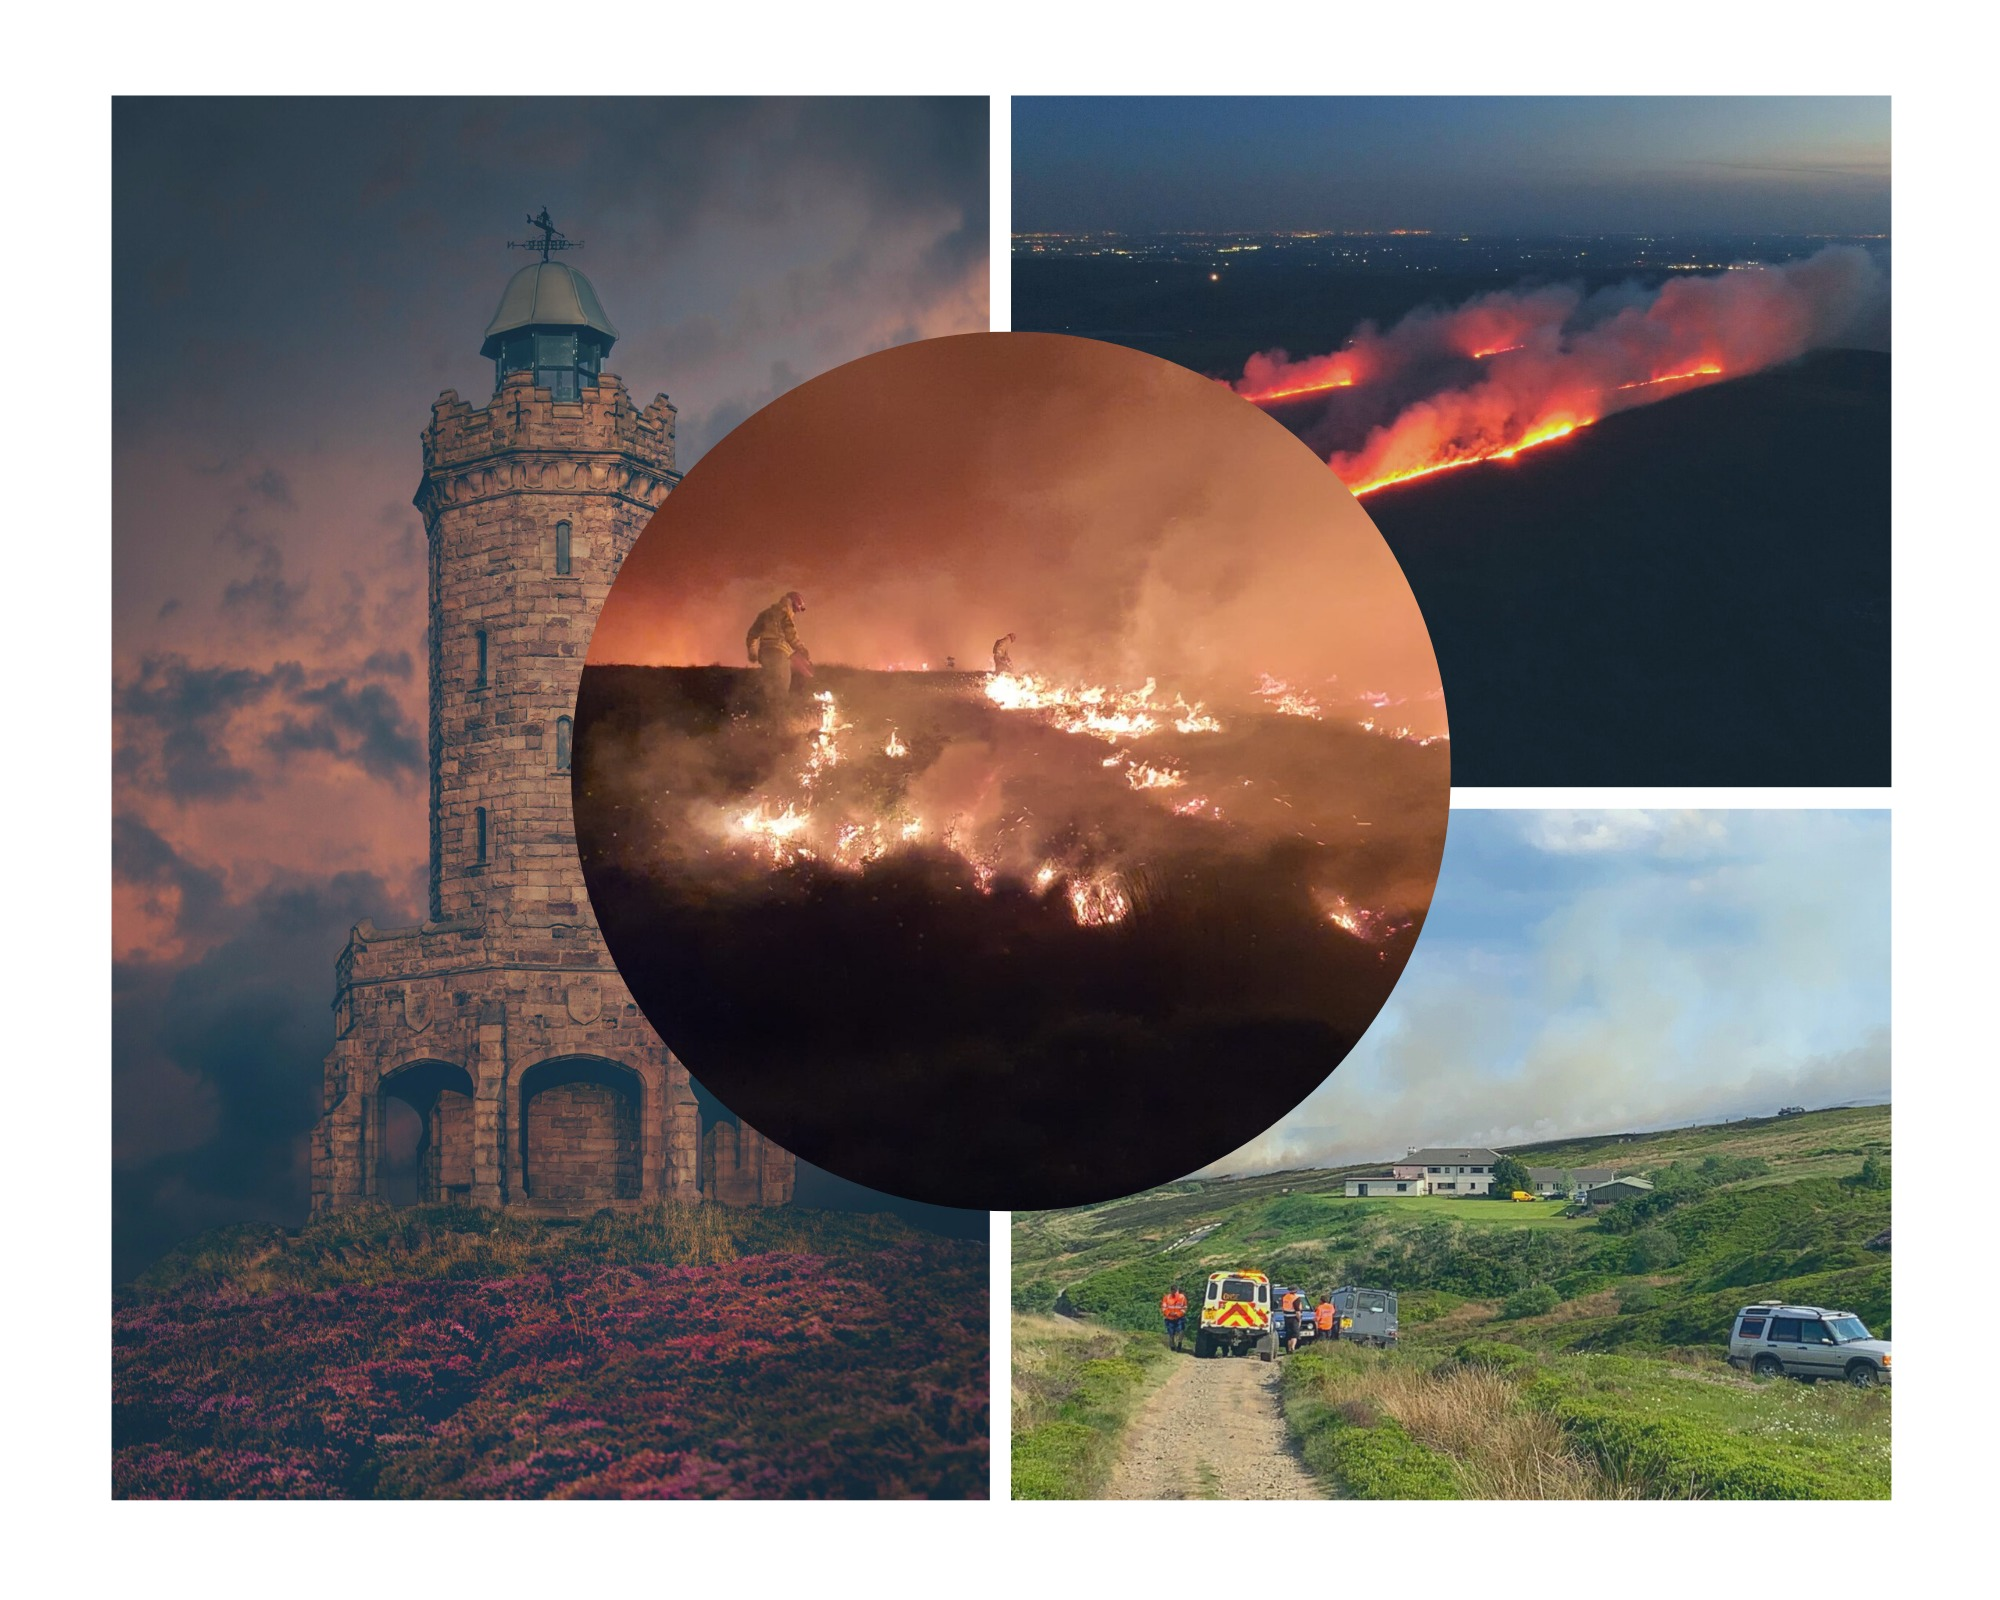 IN PICTURES - amazing images show devastation of fire ravaged Darwen Moor